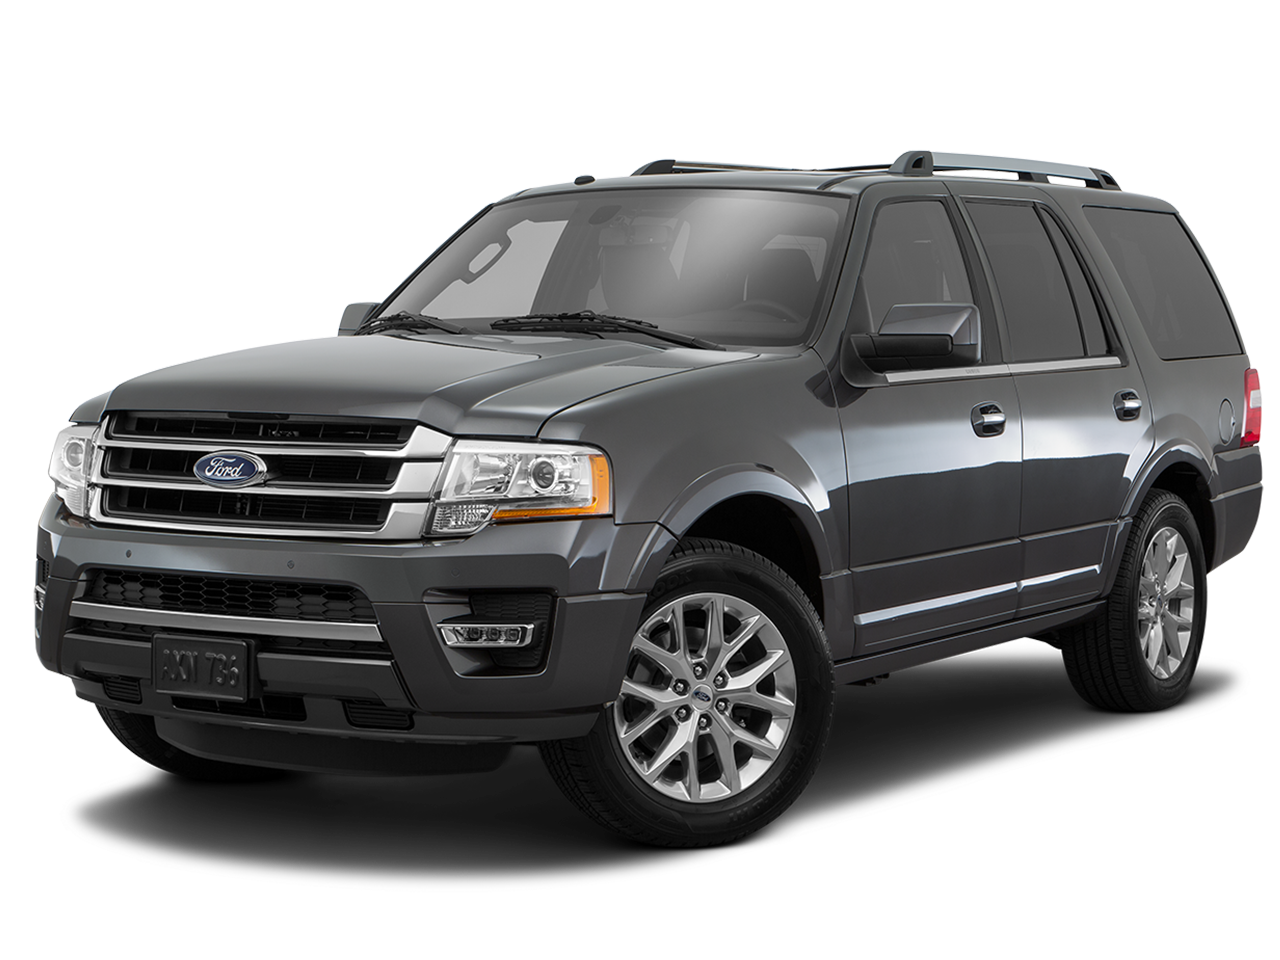 new 2016 ford expedition. Black Bedroom Furniture Sets. Home Design Ideas